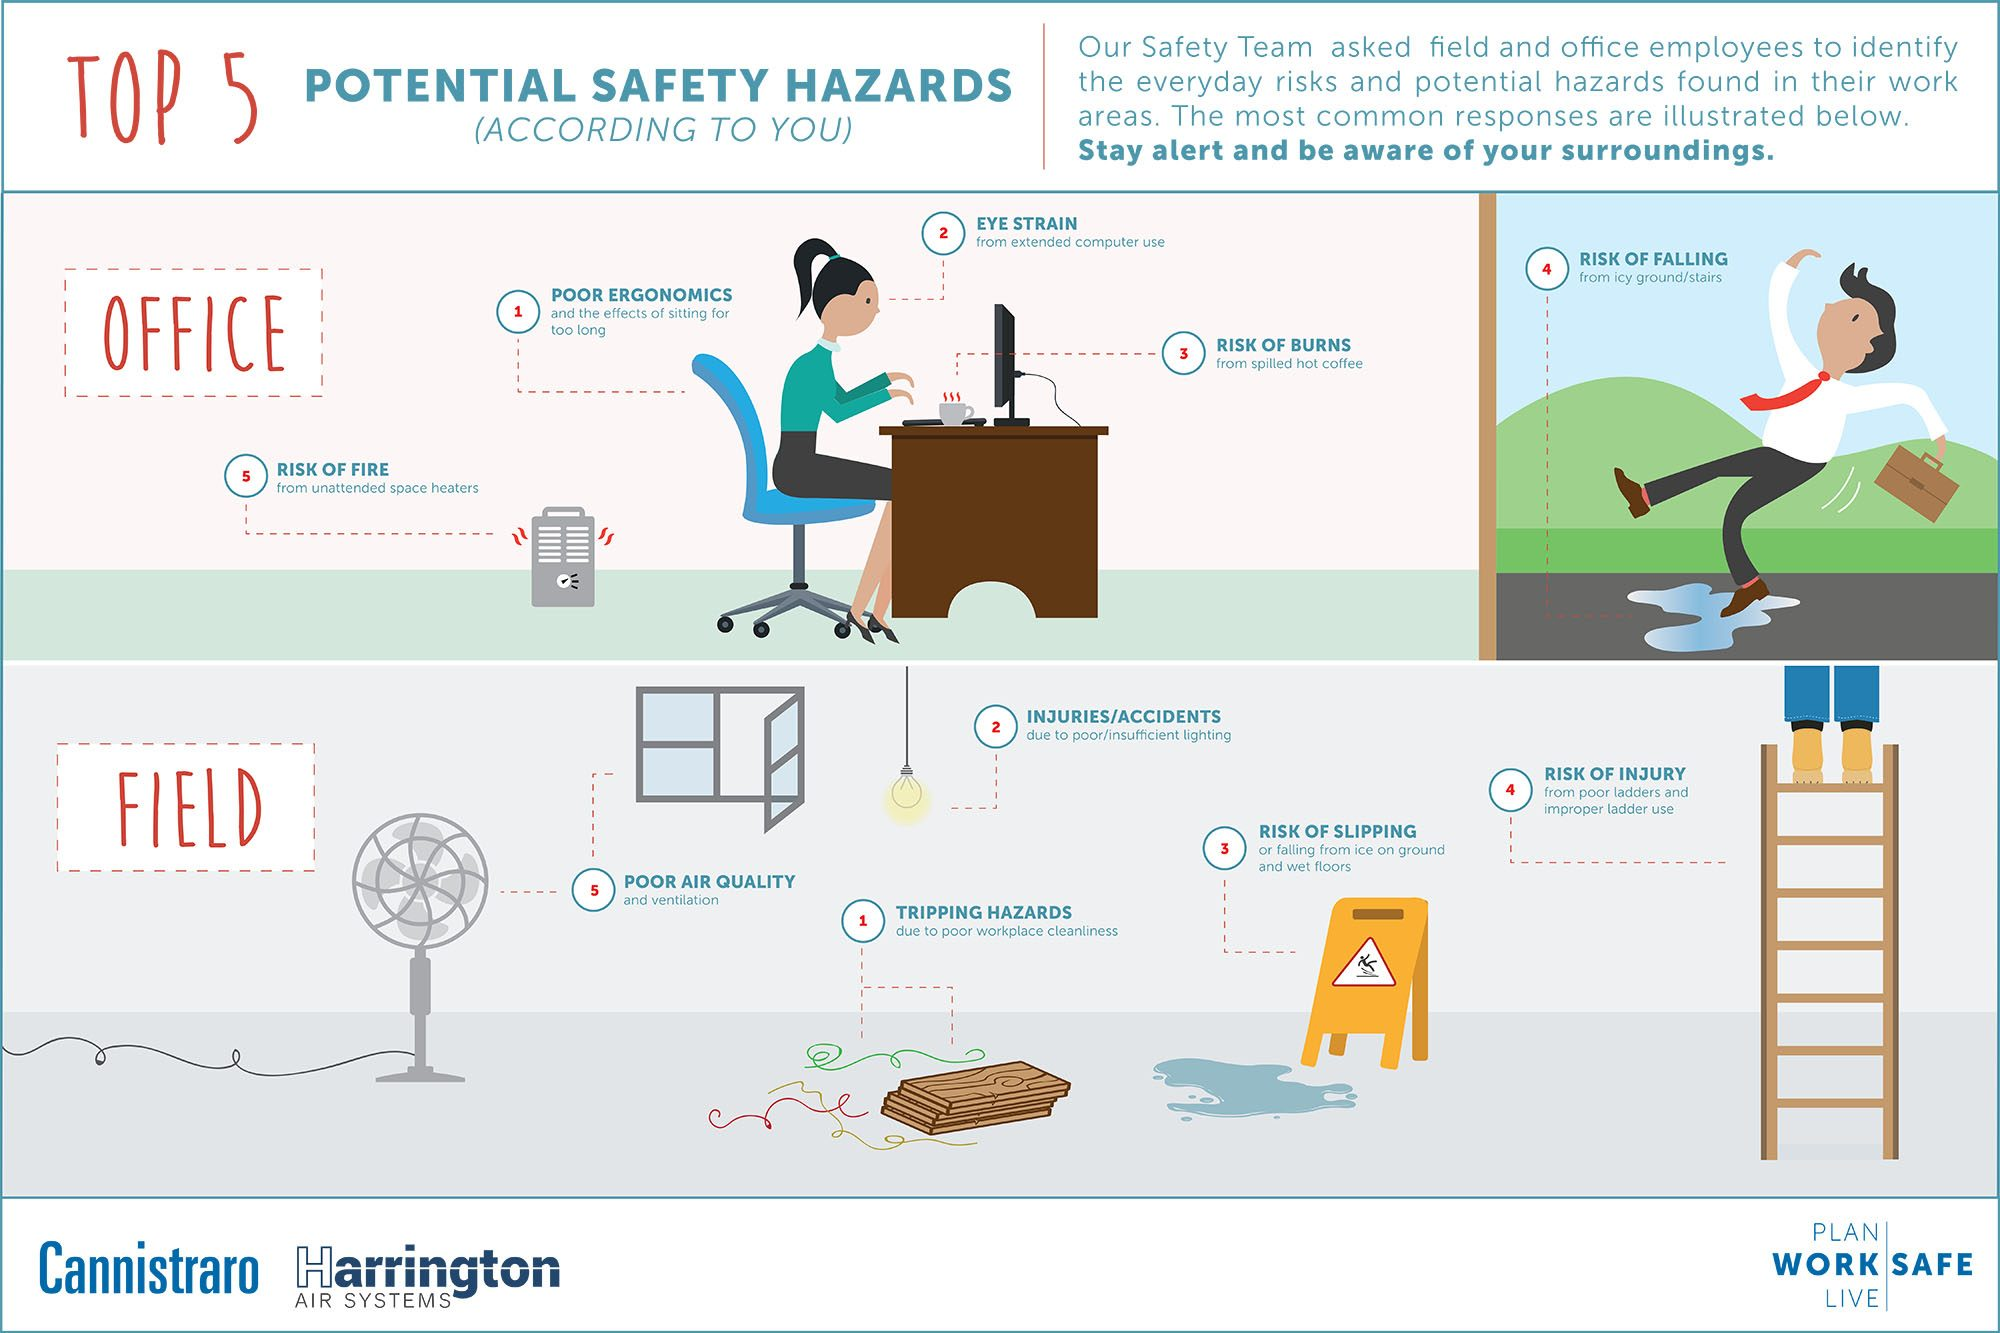 5 Common Workplace Safety Hazards